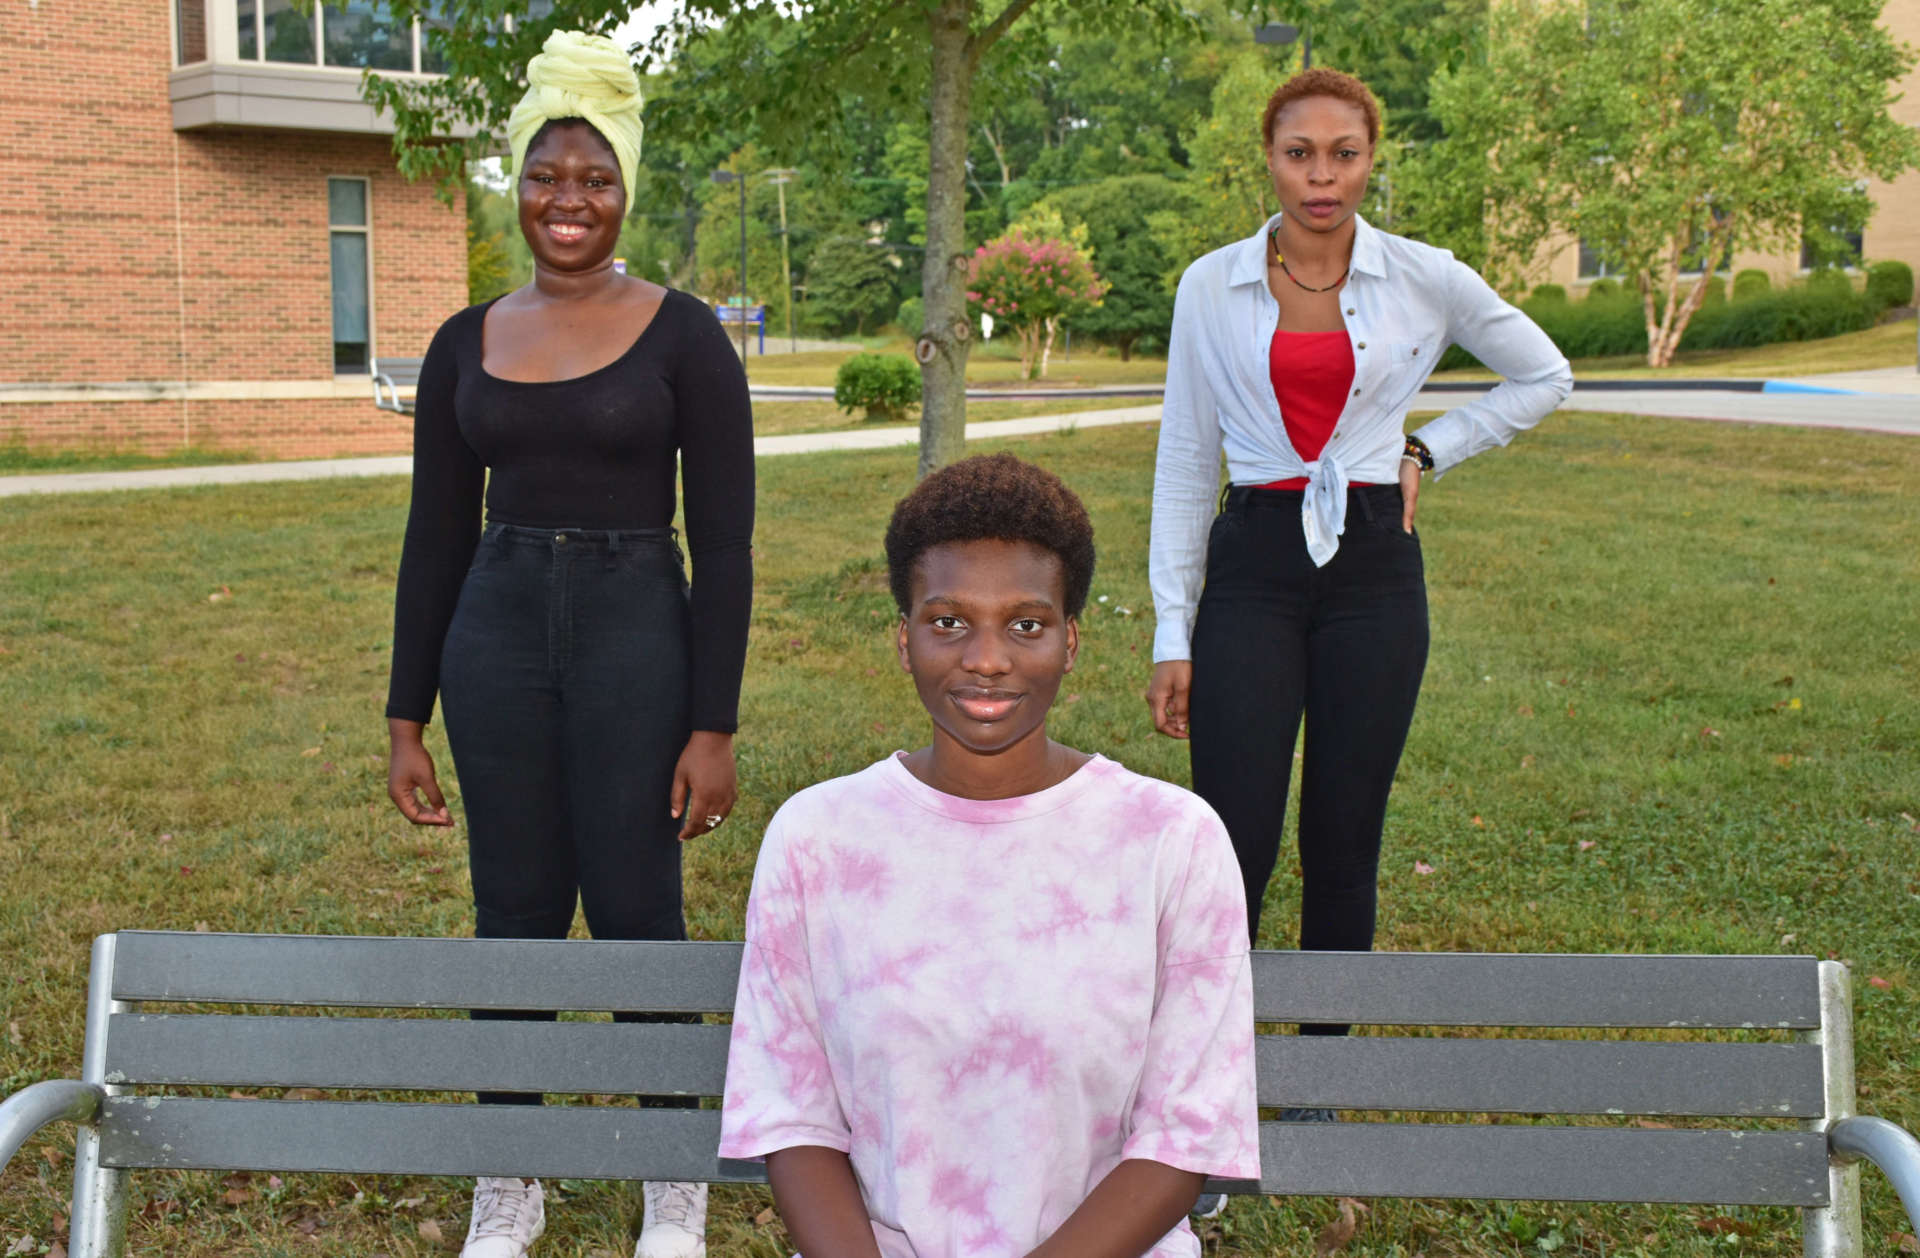 Among the 62 international students attending Shepherd are (seated) Kady Sanogo, psychology major, Mali, (standing, l. to r.) Fatoumatta Conteh, chemistry major, The Gambia, and Larissa Fatou Mendy, business administration major, Ivory Coast.